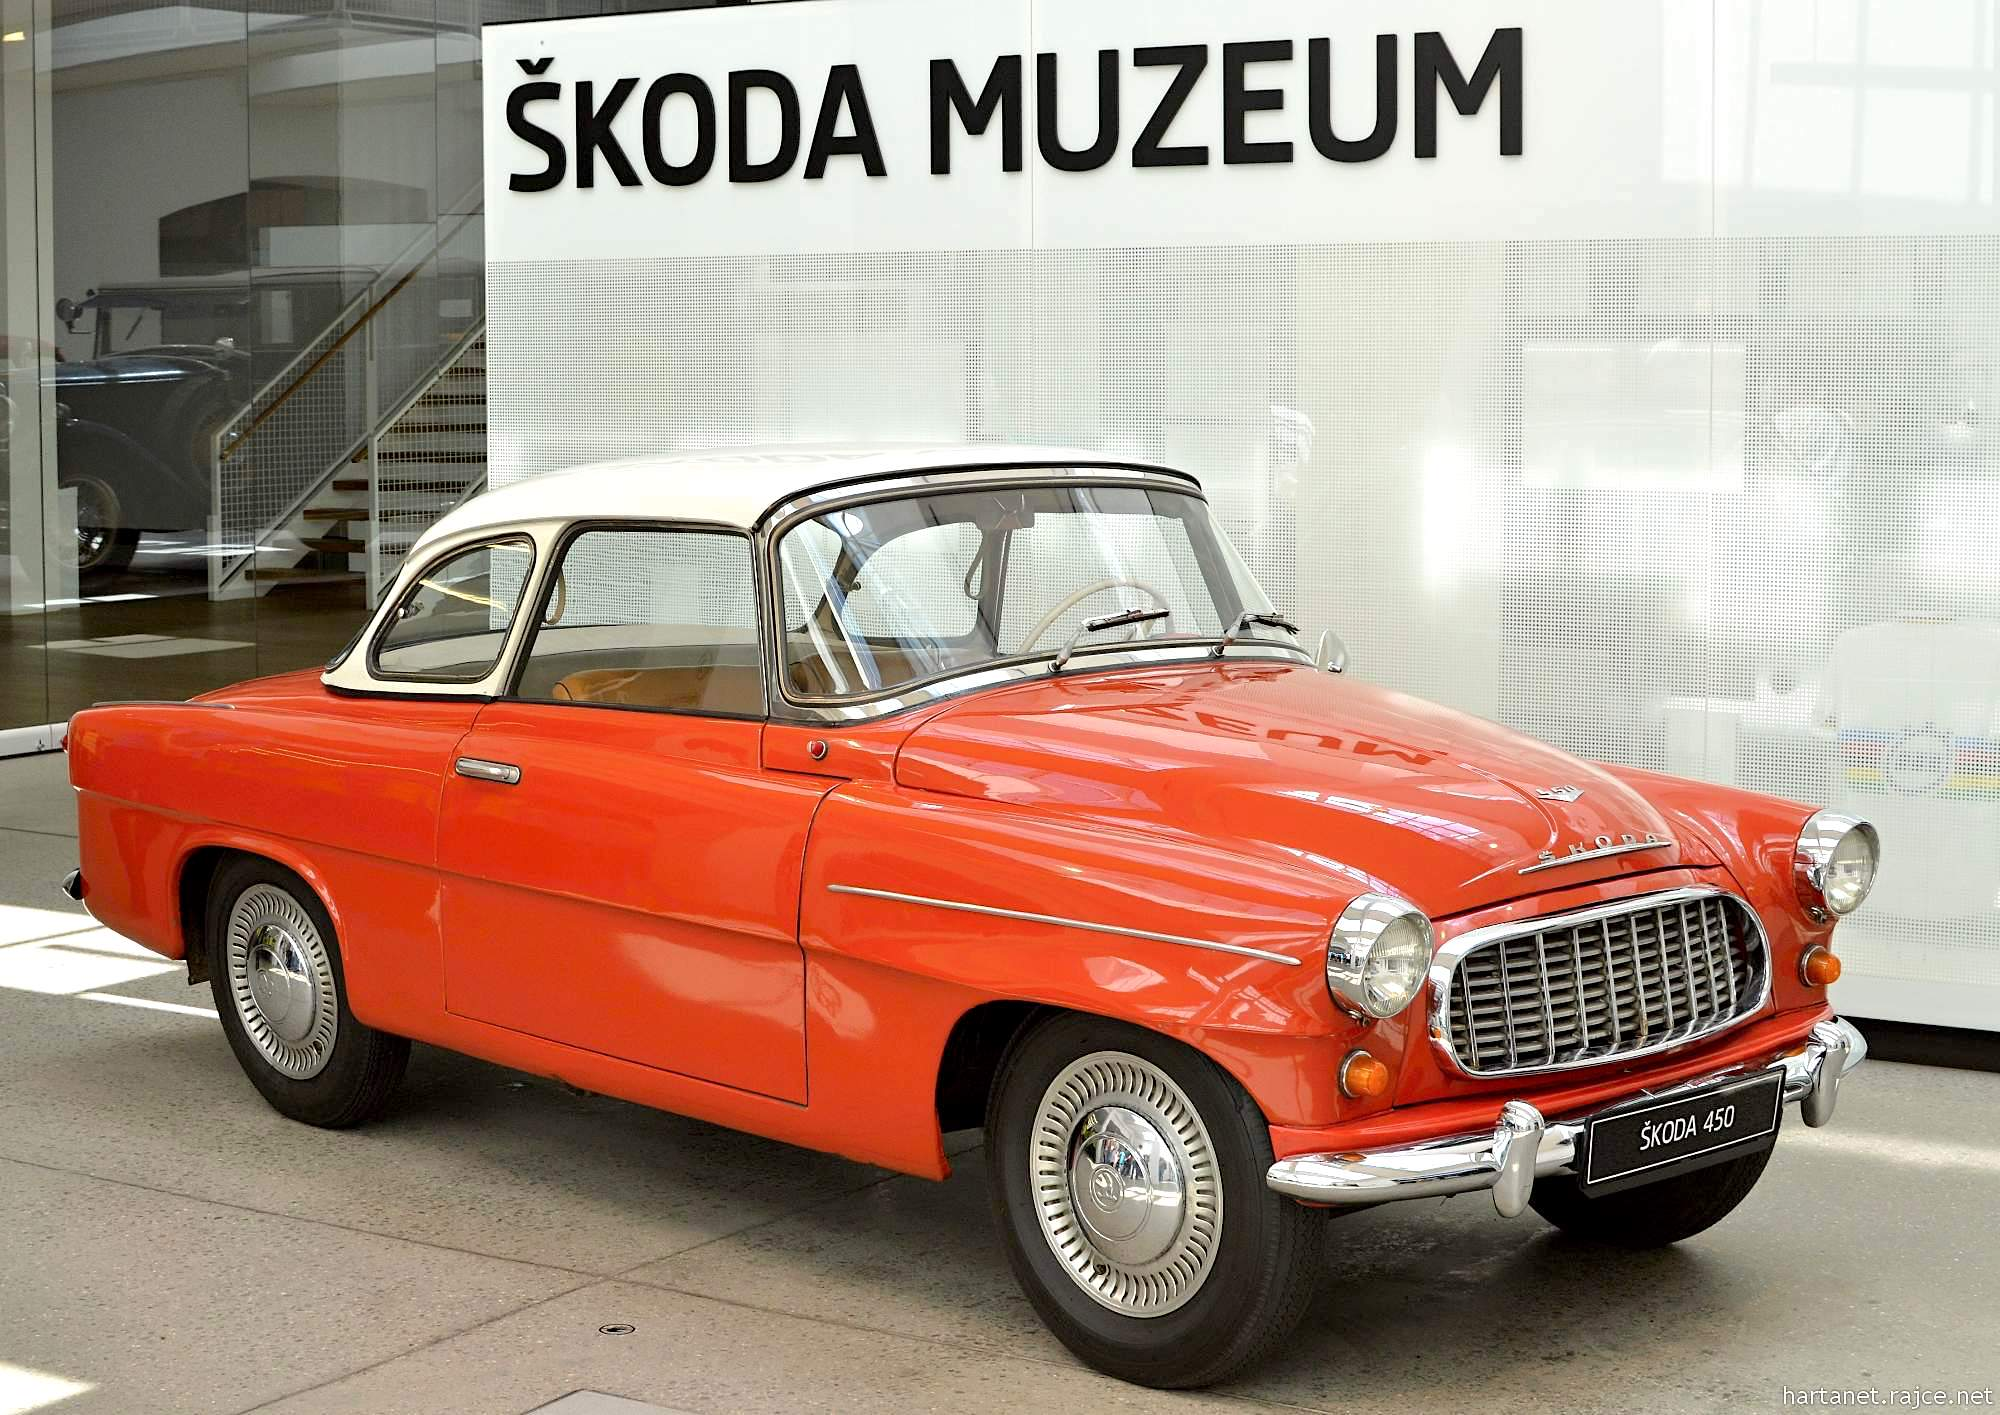 Skoda, Museum, Czech Republic, Mlada Boleslav, Daytrip Prague, private tour